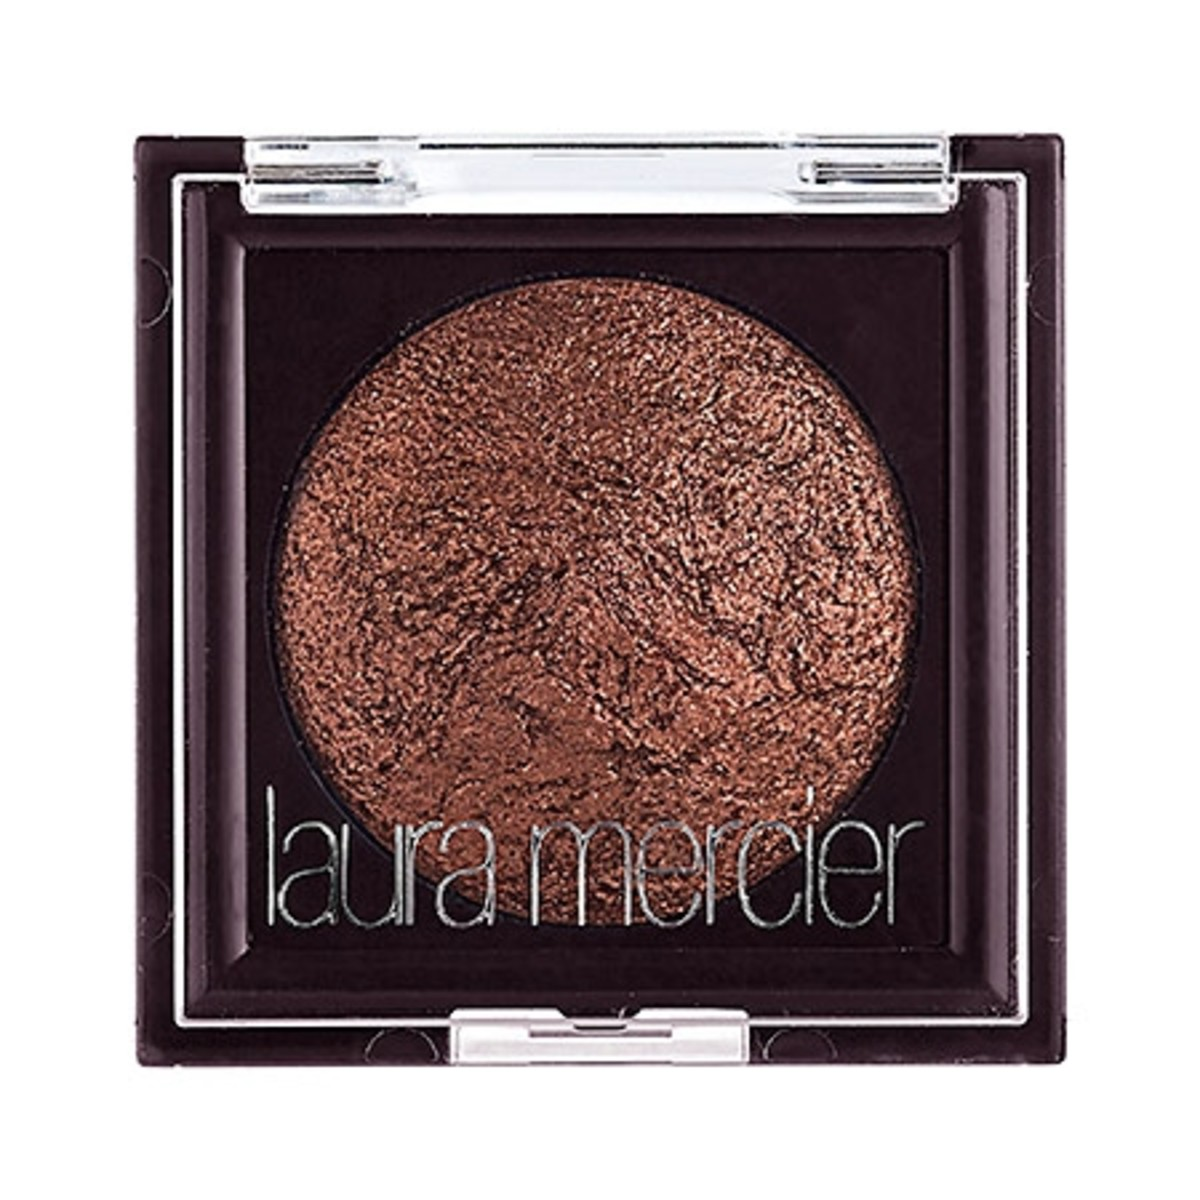 Laura Mercier Baked Eye Colour in Terracotta